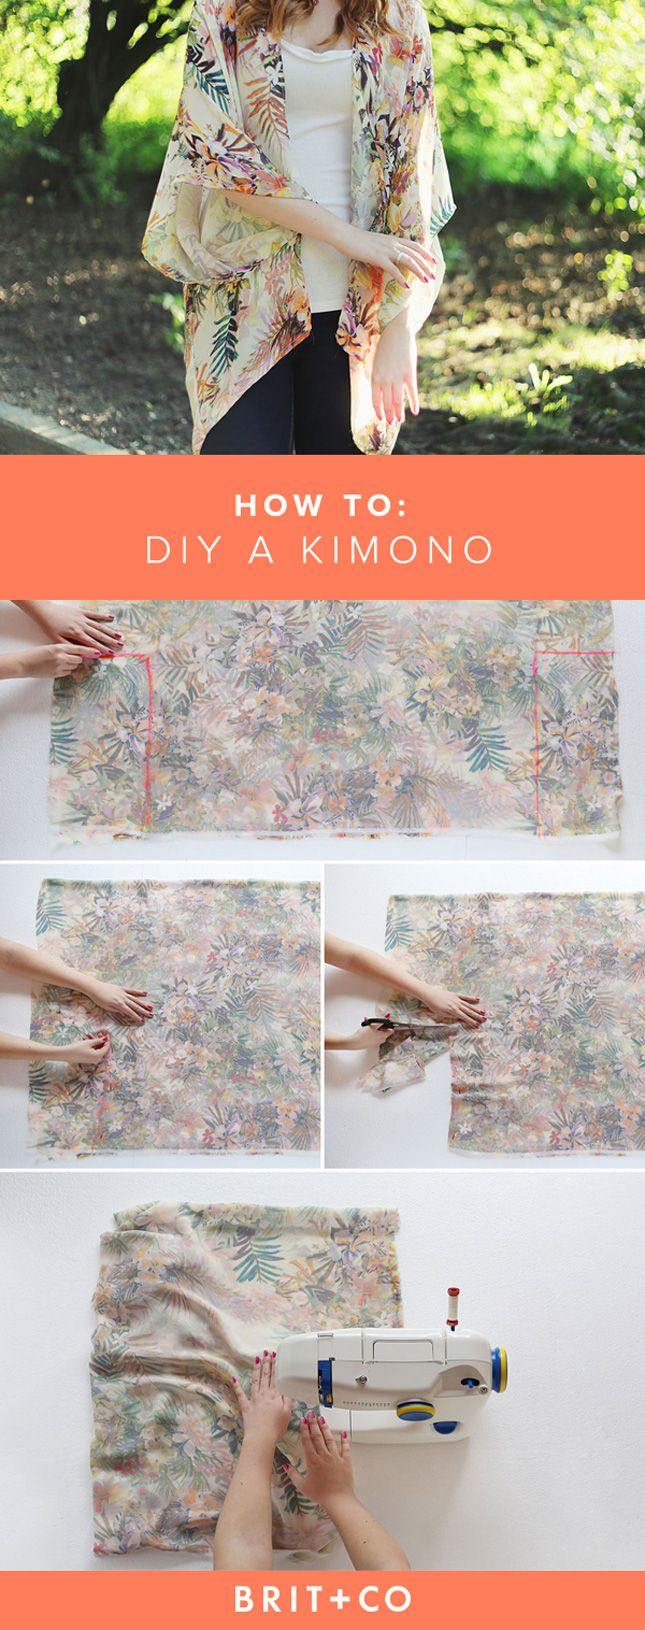 DIY a Kimono in 30 Minutes for Just $10!